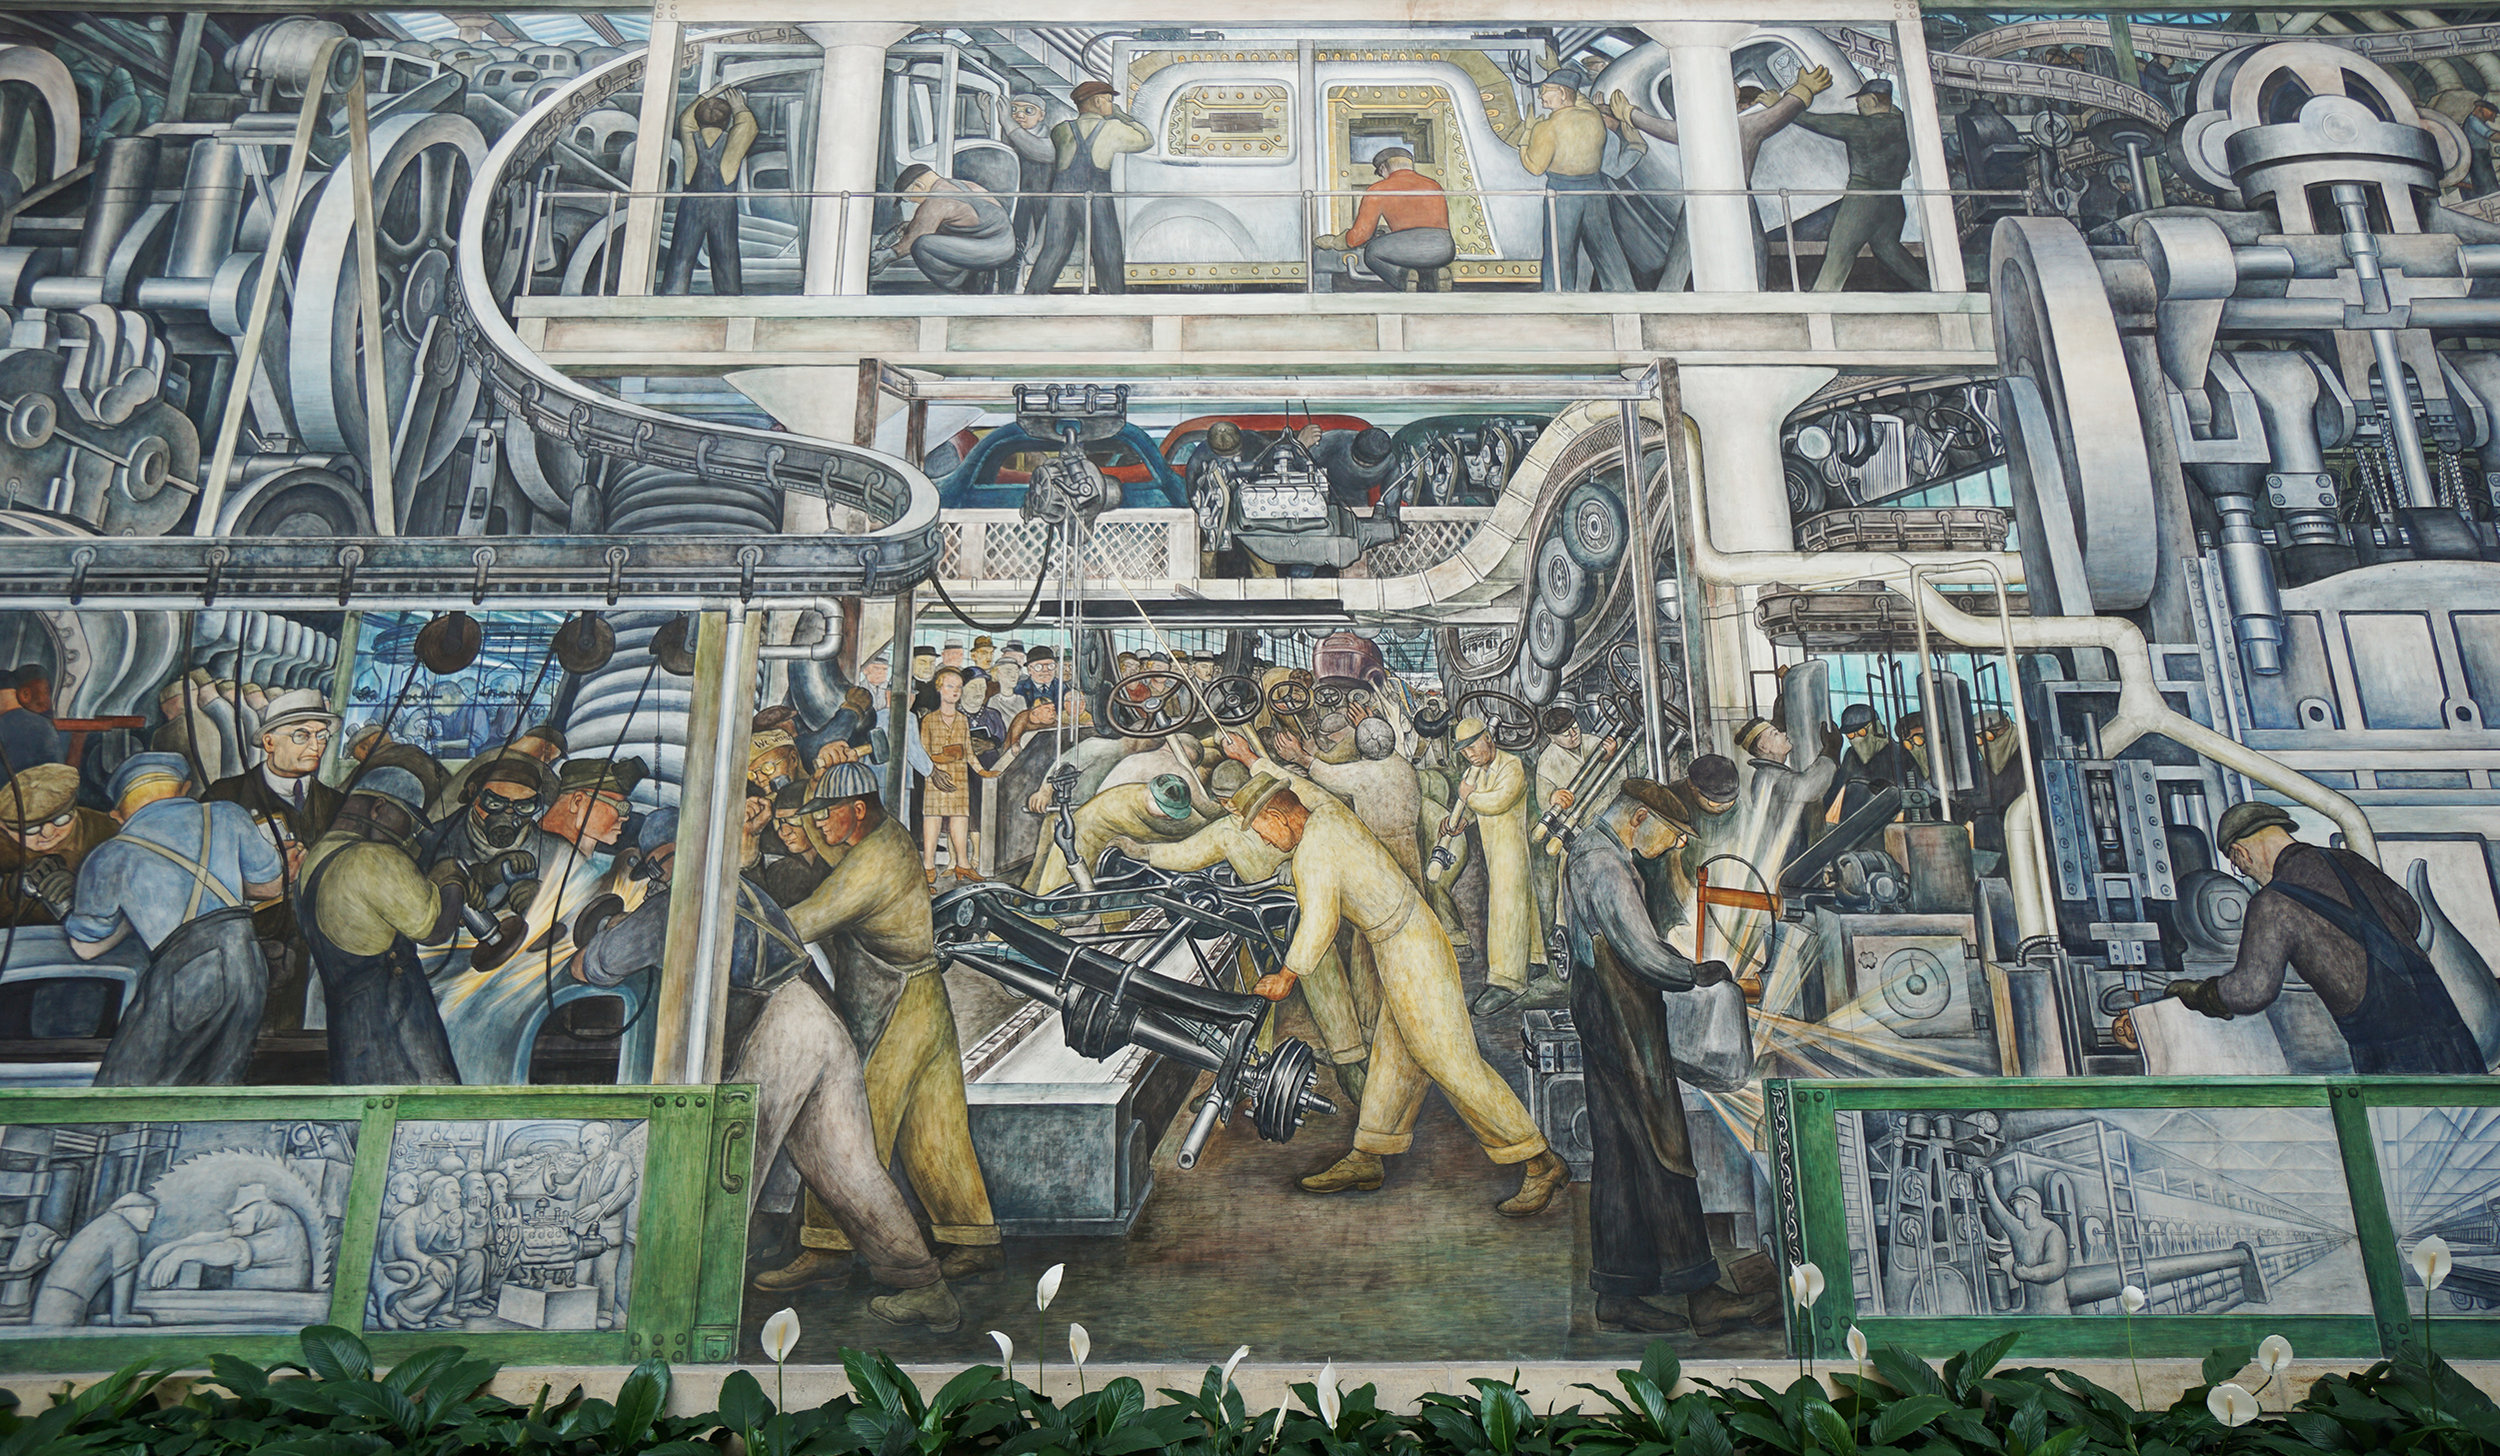 The Diego Rivera mural in the Detroit Art Insitute